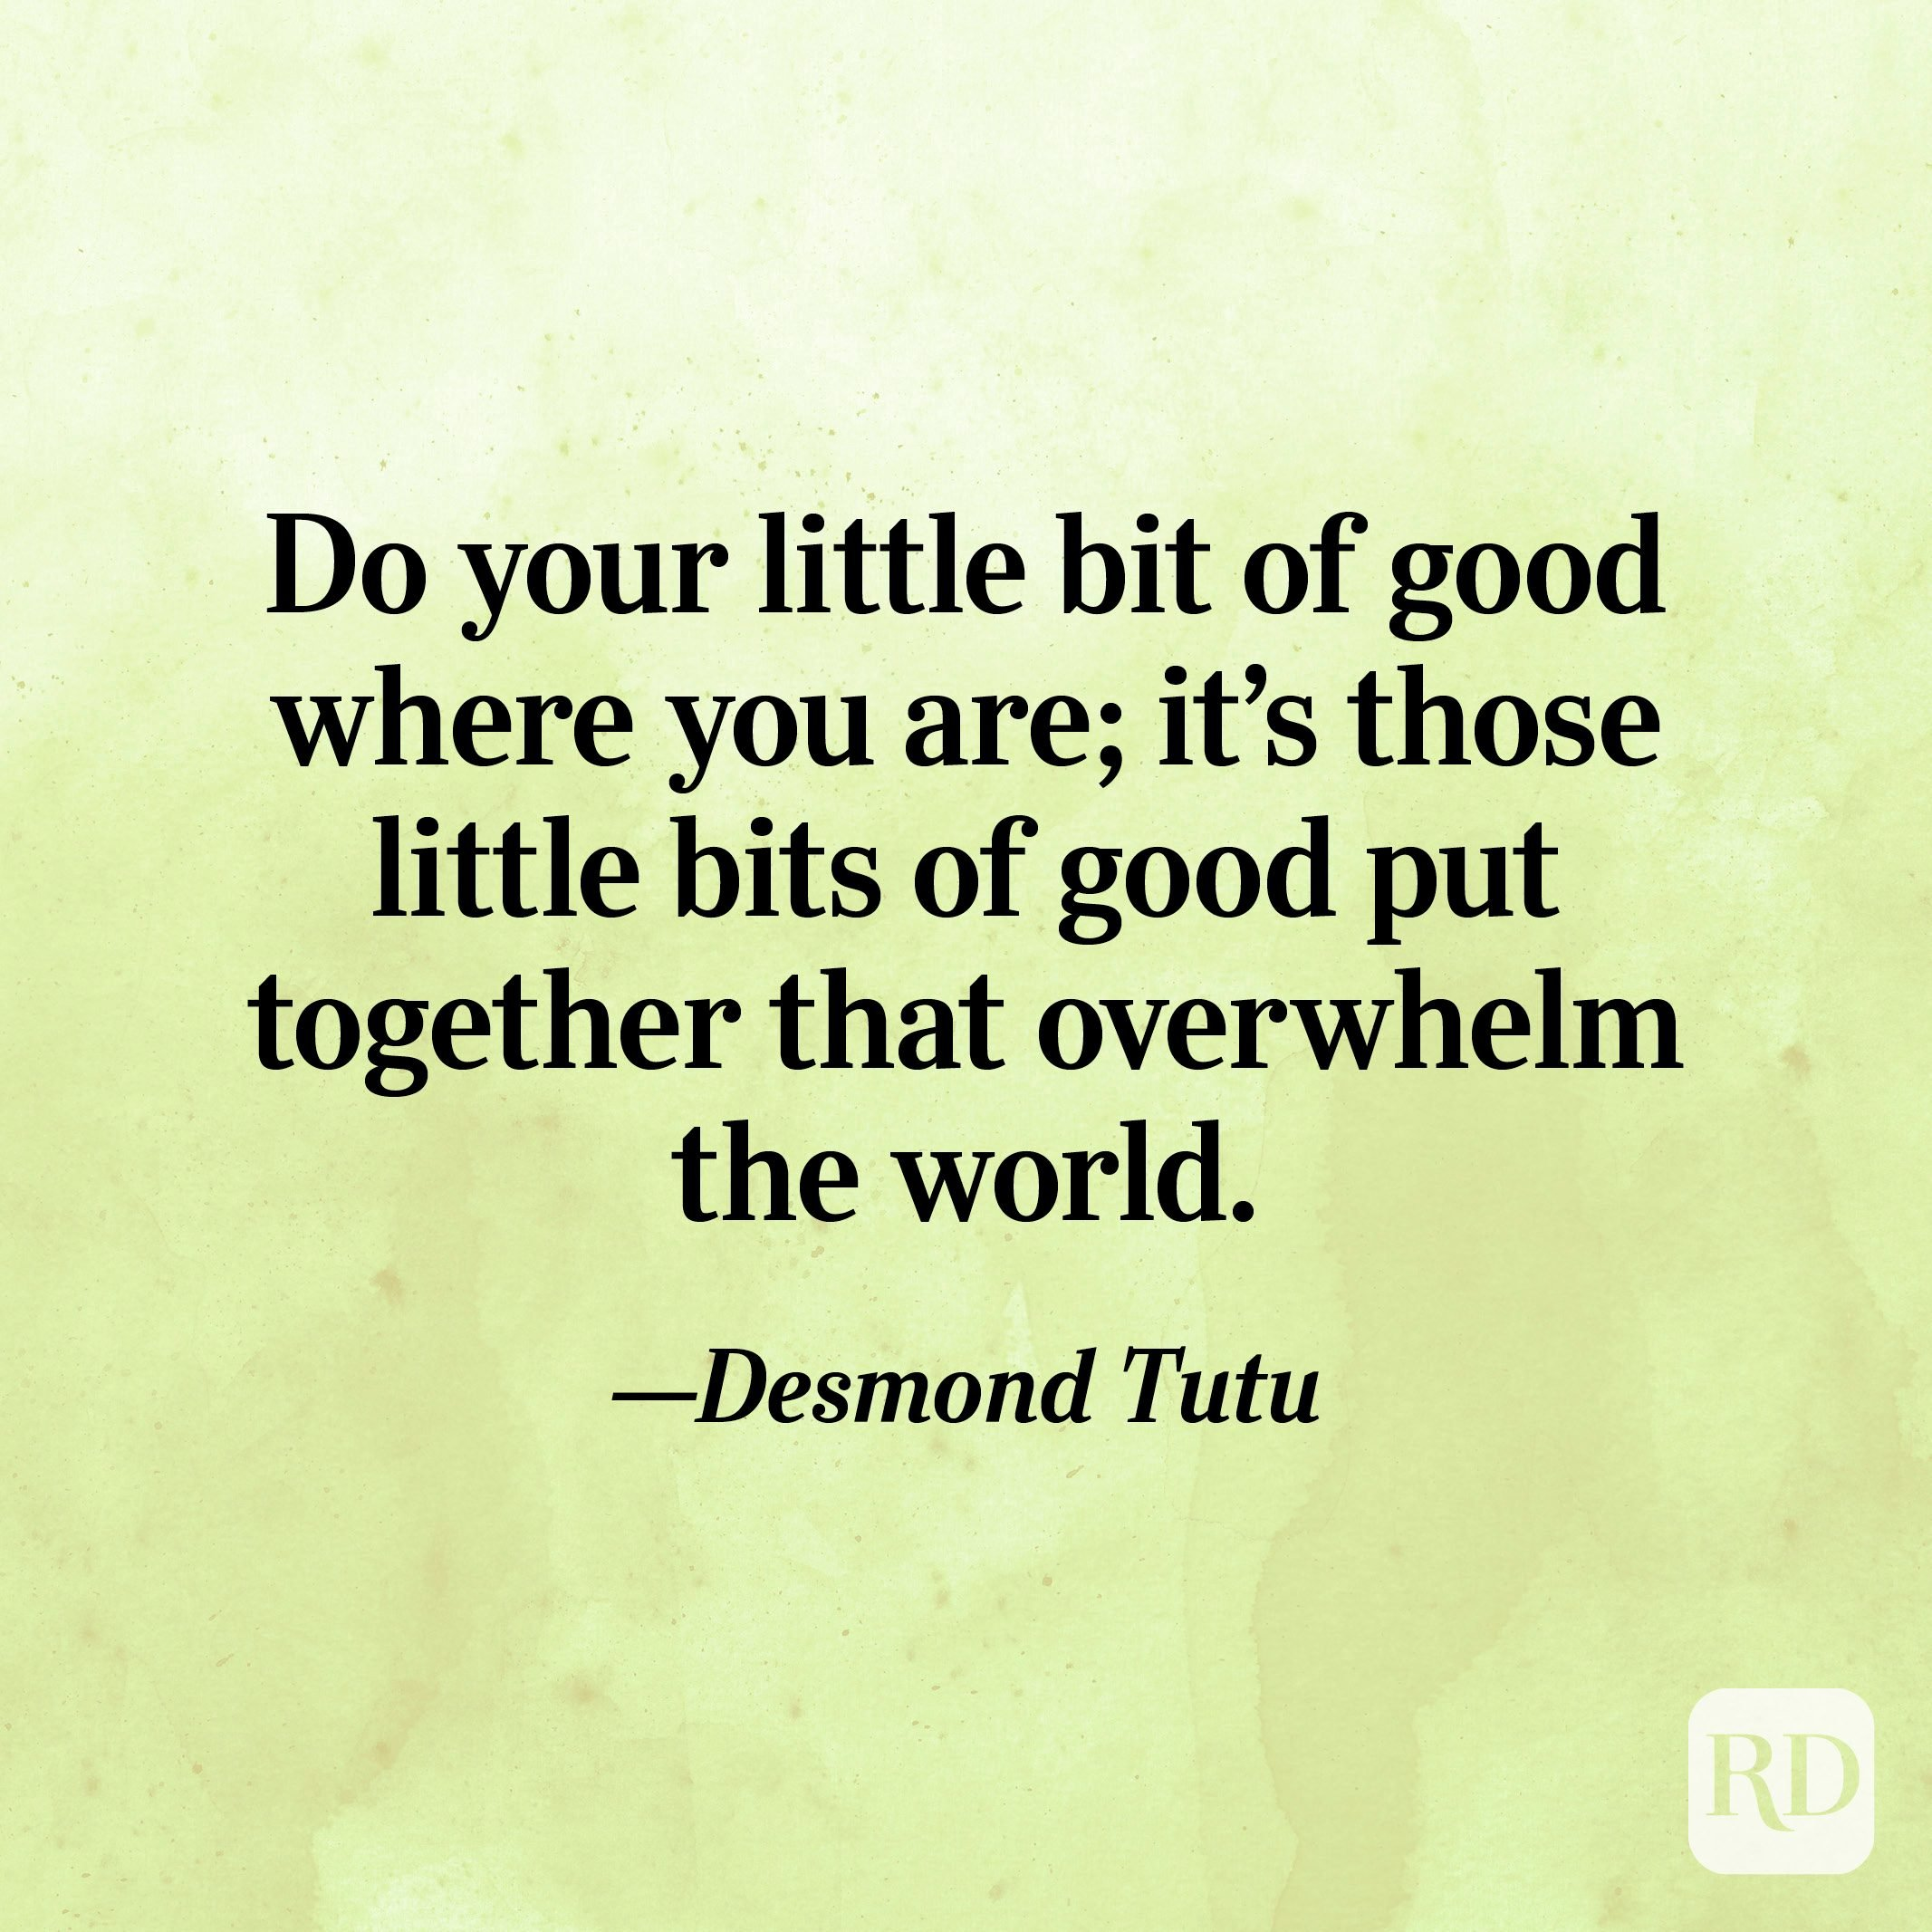 """""""Do your little bit of good where you are; it's those little bits of good put together that overwhelm the world."""" —Desmond Tutu"""